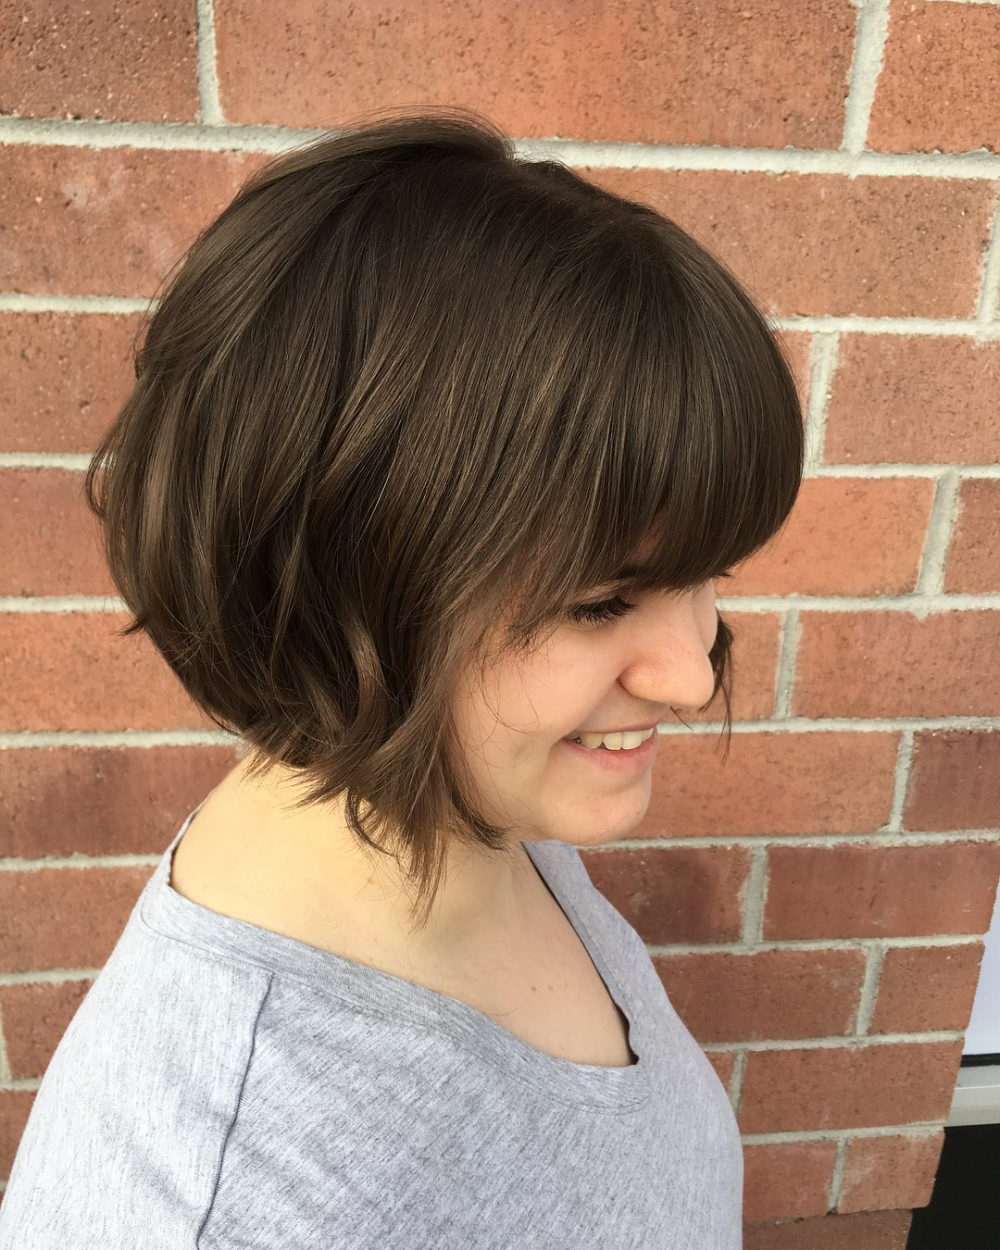 34 Greatest Short Haircuts And Hairstyles For Thick Hair For 2018 Regarding Short Haircuts Thick Wavy Hair (View 3 of 25)